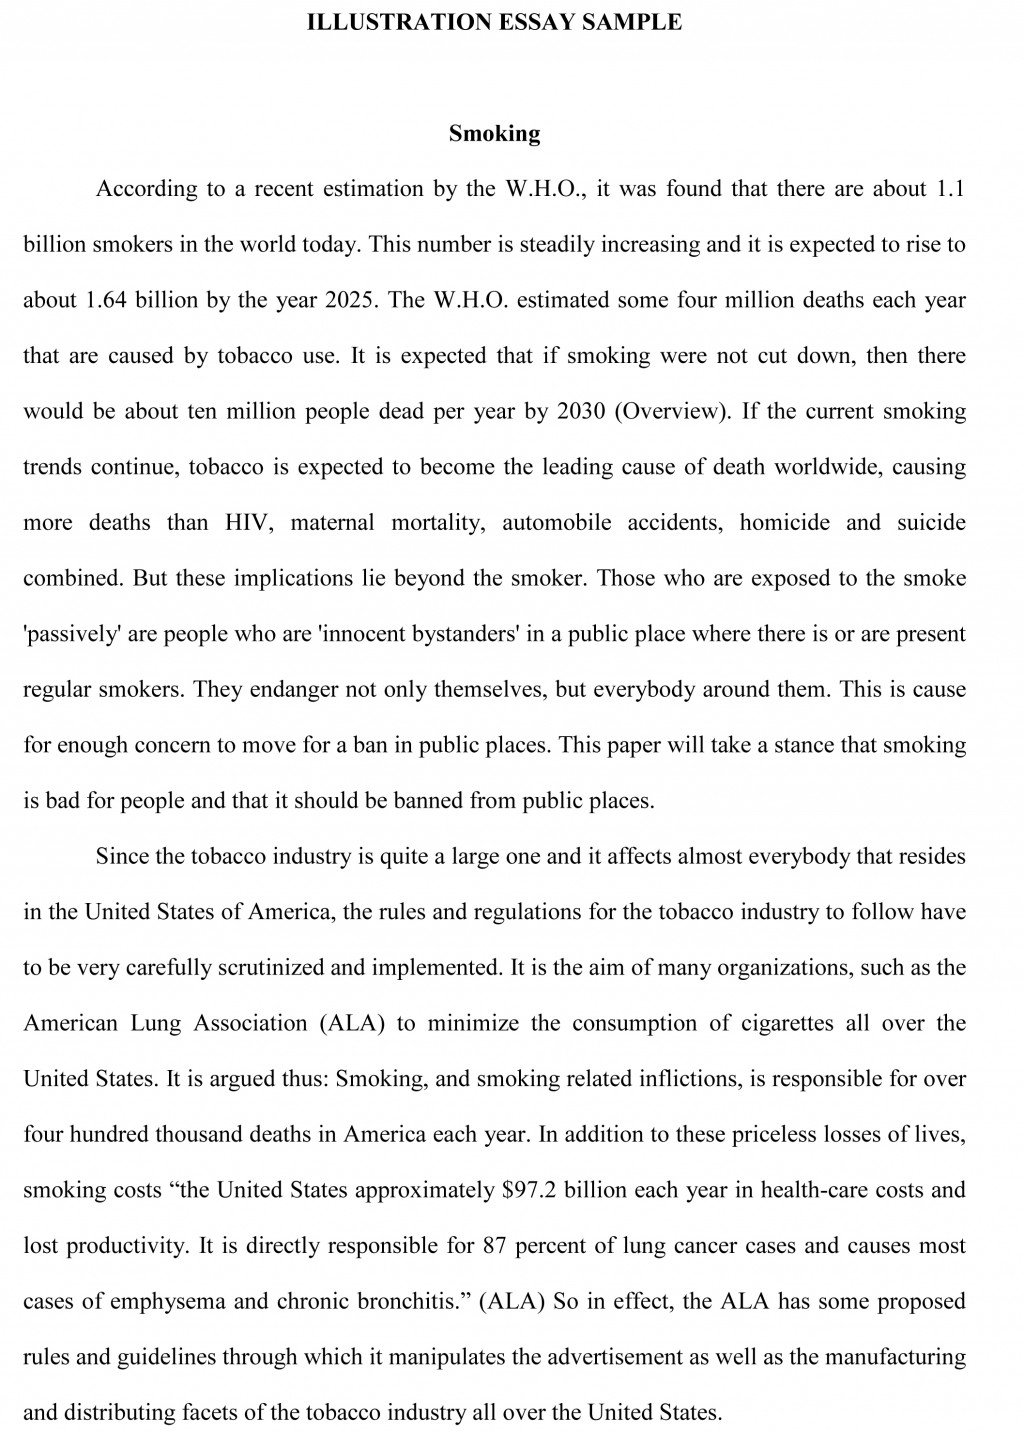 026 Illustration Essay Sample How To Write An Autobiography Fearsome Autobiographical For Graduate School Biography Large